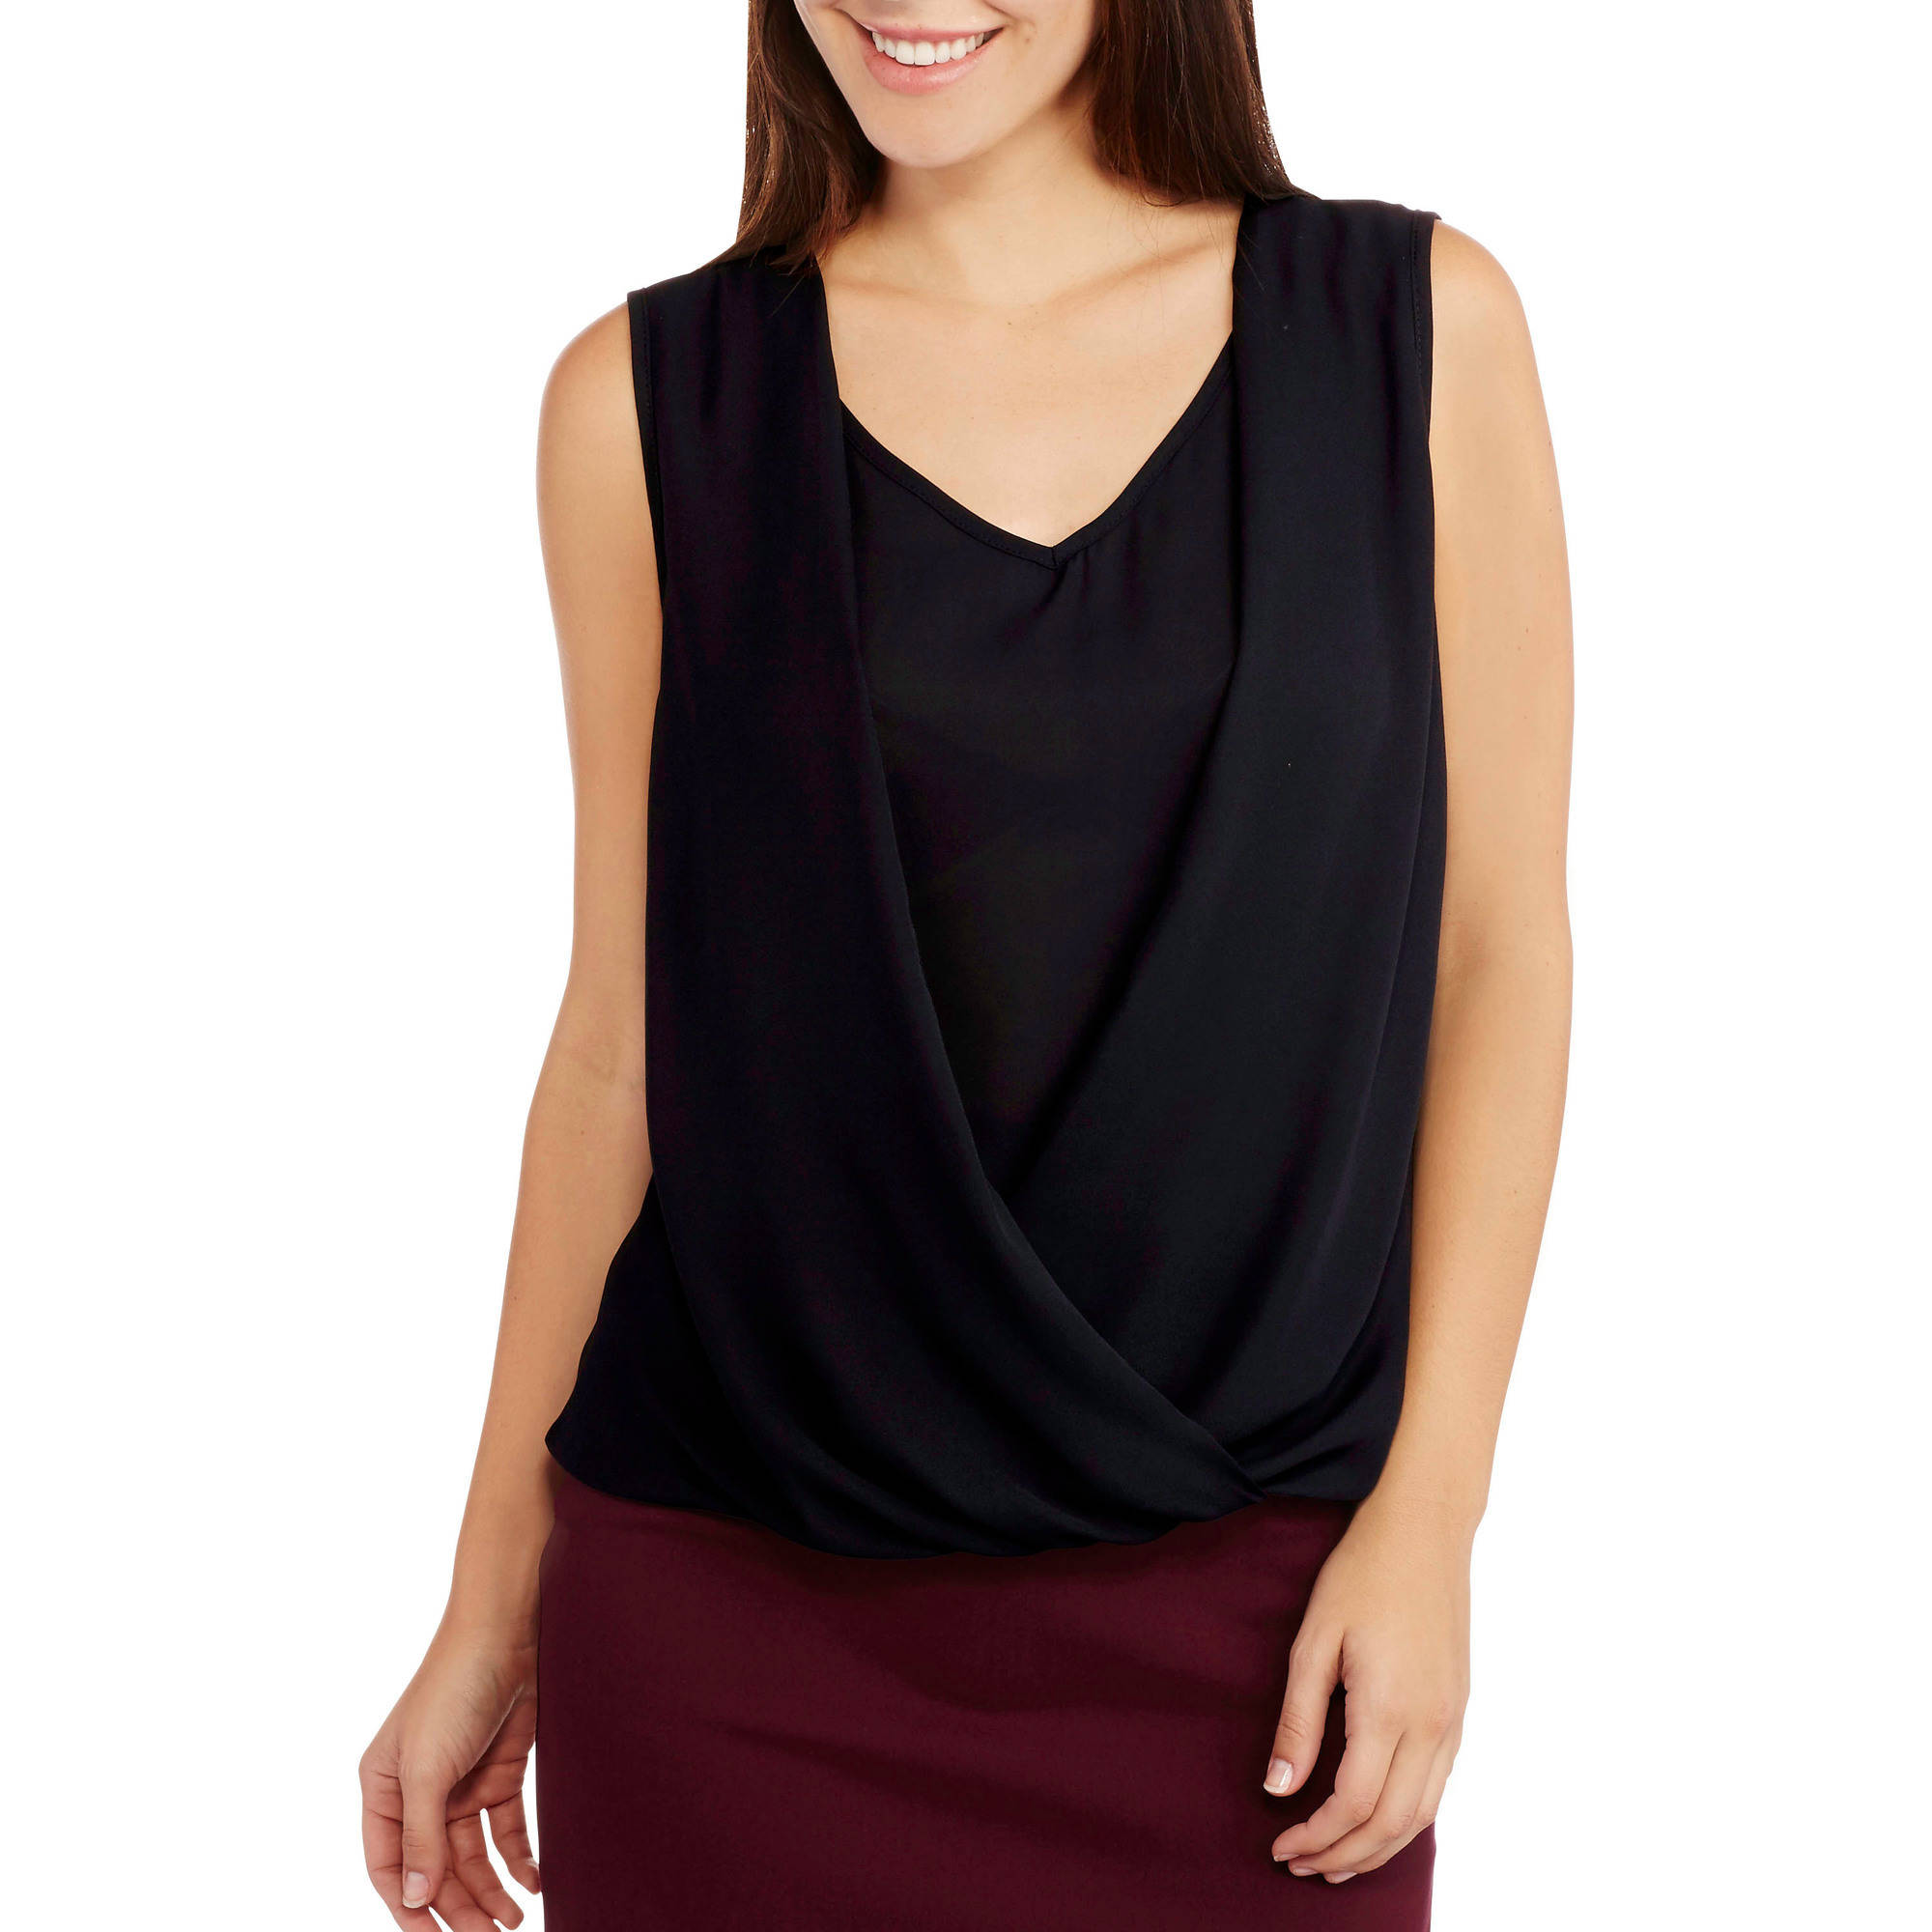 Glamour & Co. Women's Sleeveless 2fer Blouse